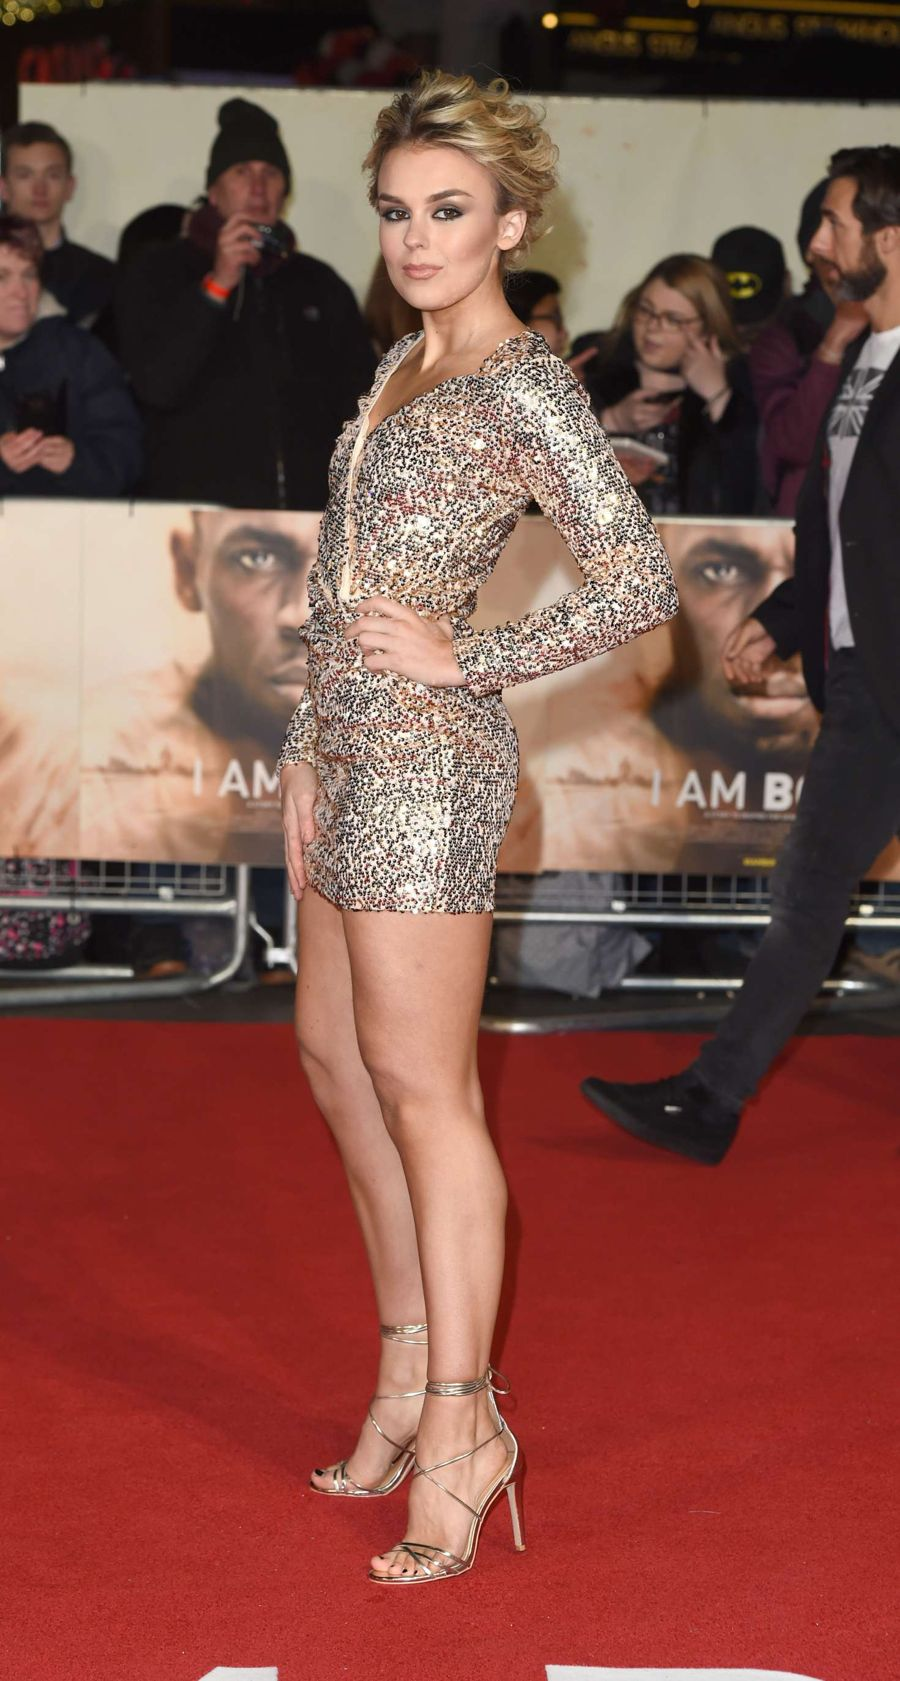 Tallia Storm - 'I Am Bolt' Premiere in London